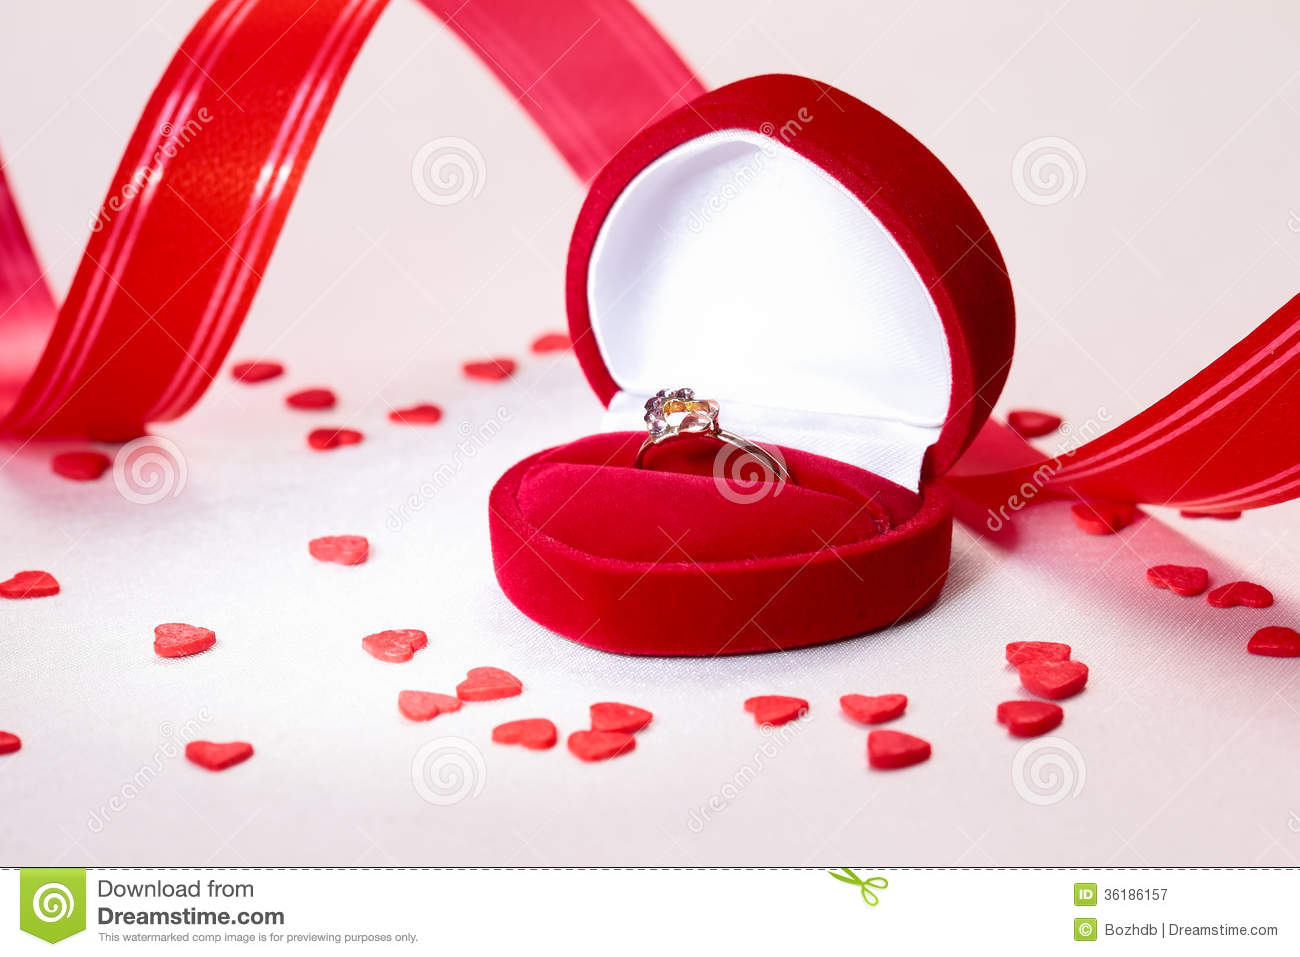 Gift for valentine stunning valentines delivery gifts for for Valentines delivery gifts for her